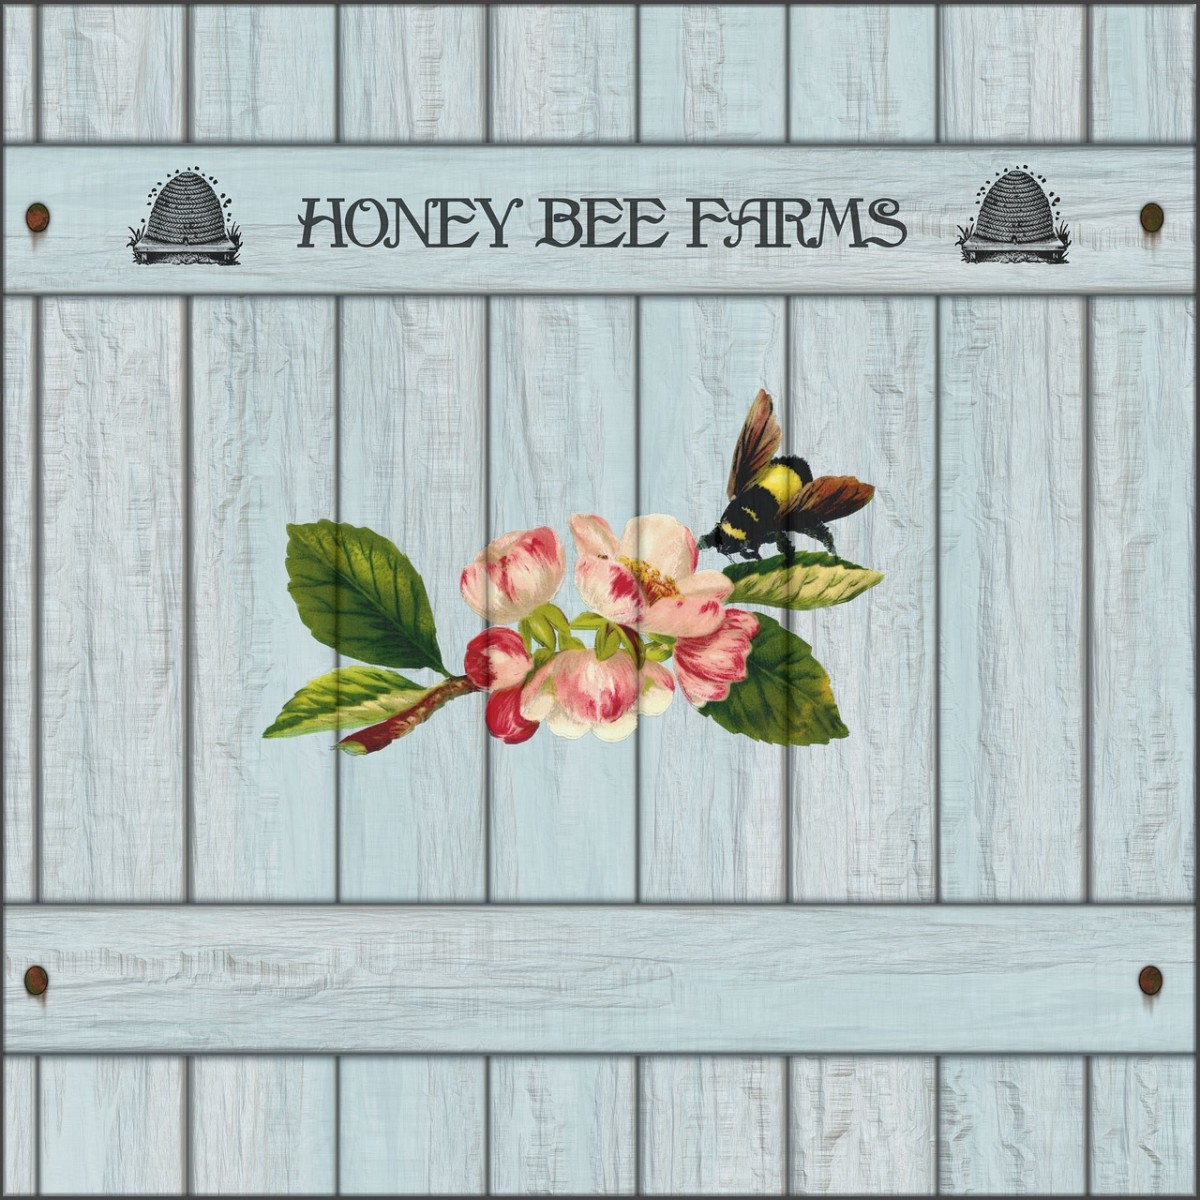 This charming wood sign displays the name Honey Bee Farm with appropriate graphics of bee hives and a bee with some flowers.